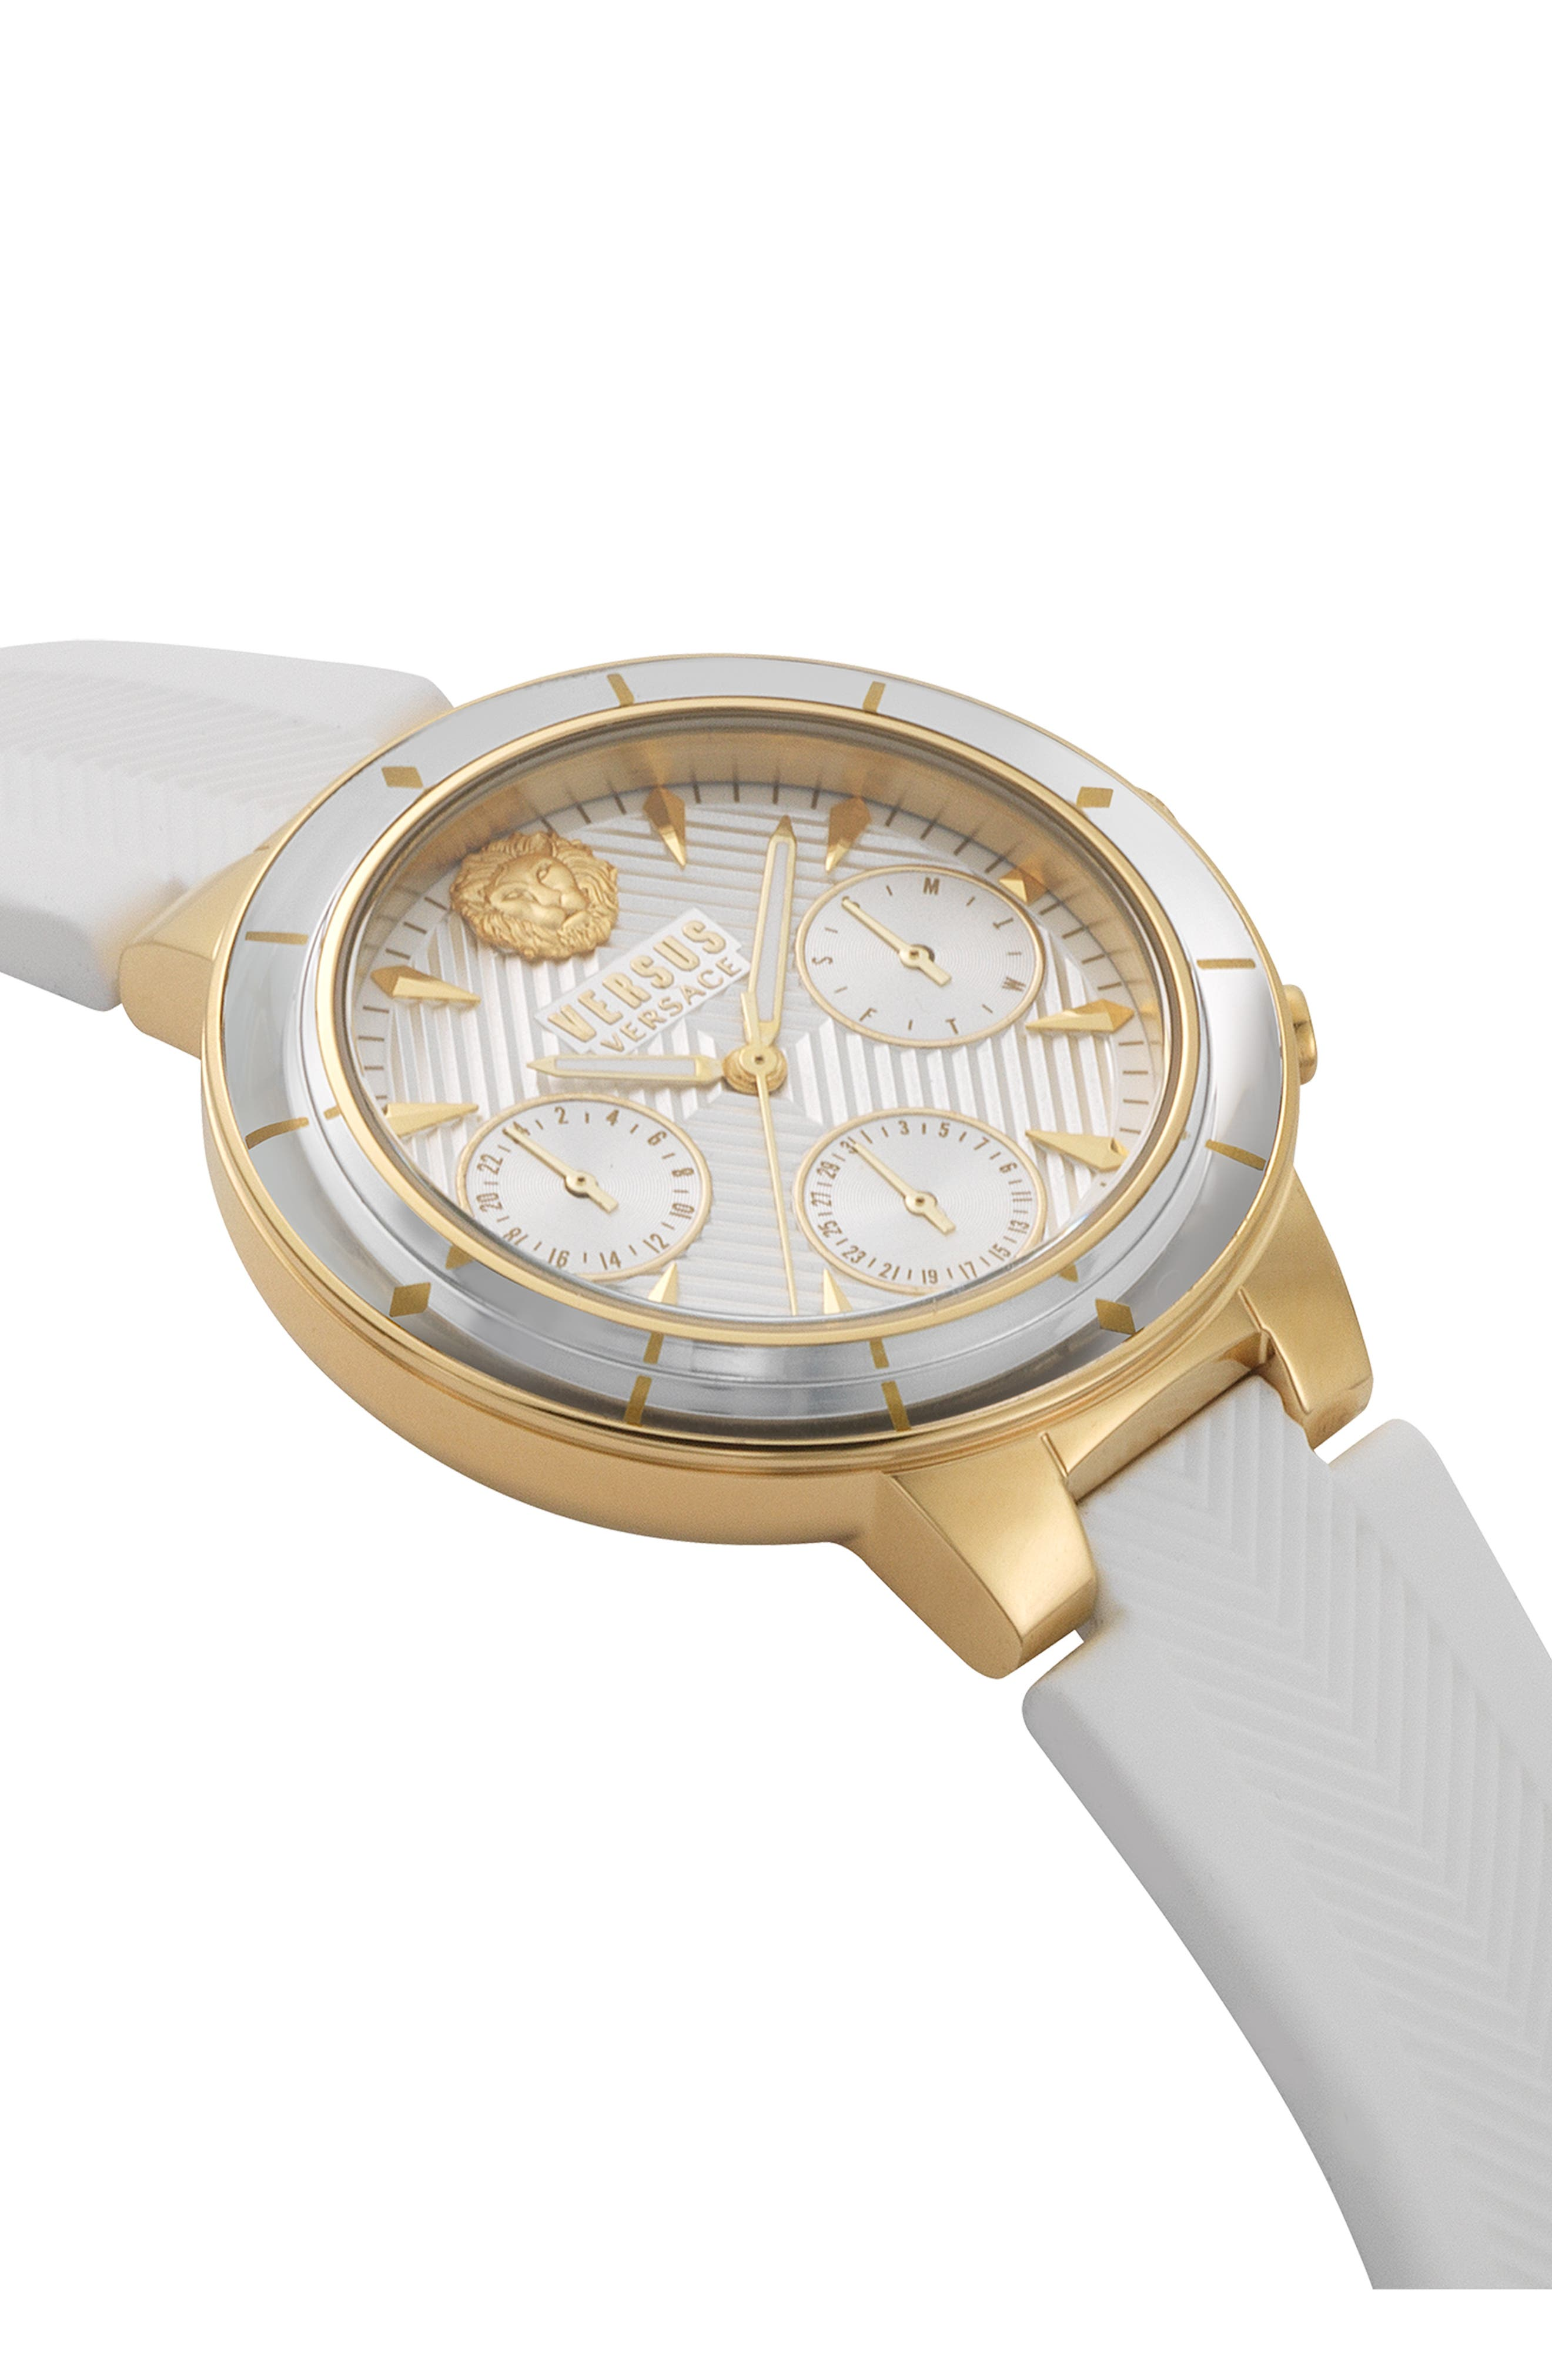 VERSUS VERSACE, Harbour Heights Silicone Strap Watch, 38mm, Alternate thumbnail 3, color, WHITE/ GOLD